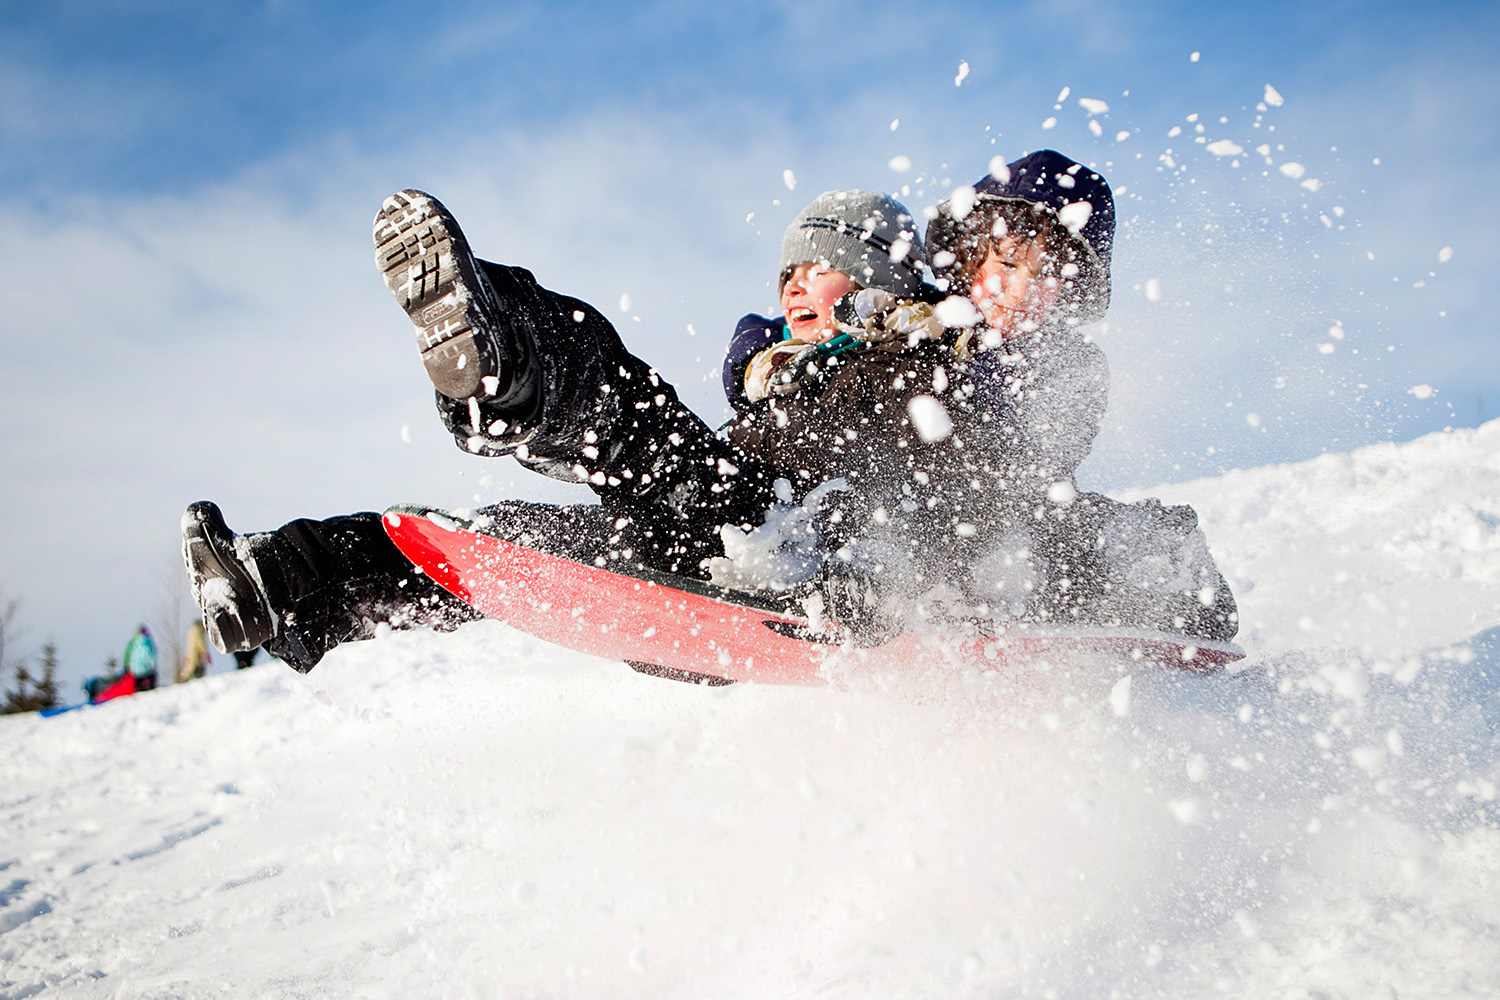 Editorial image of two boys sledding